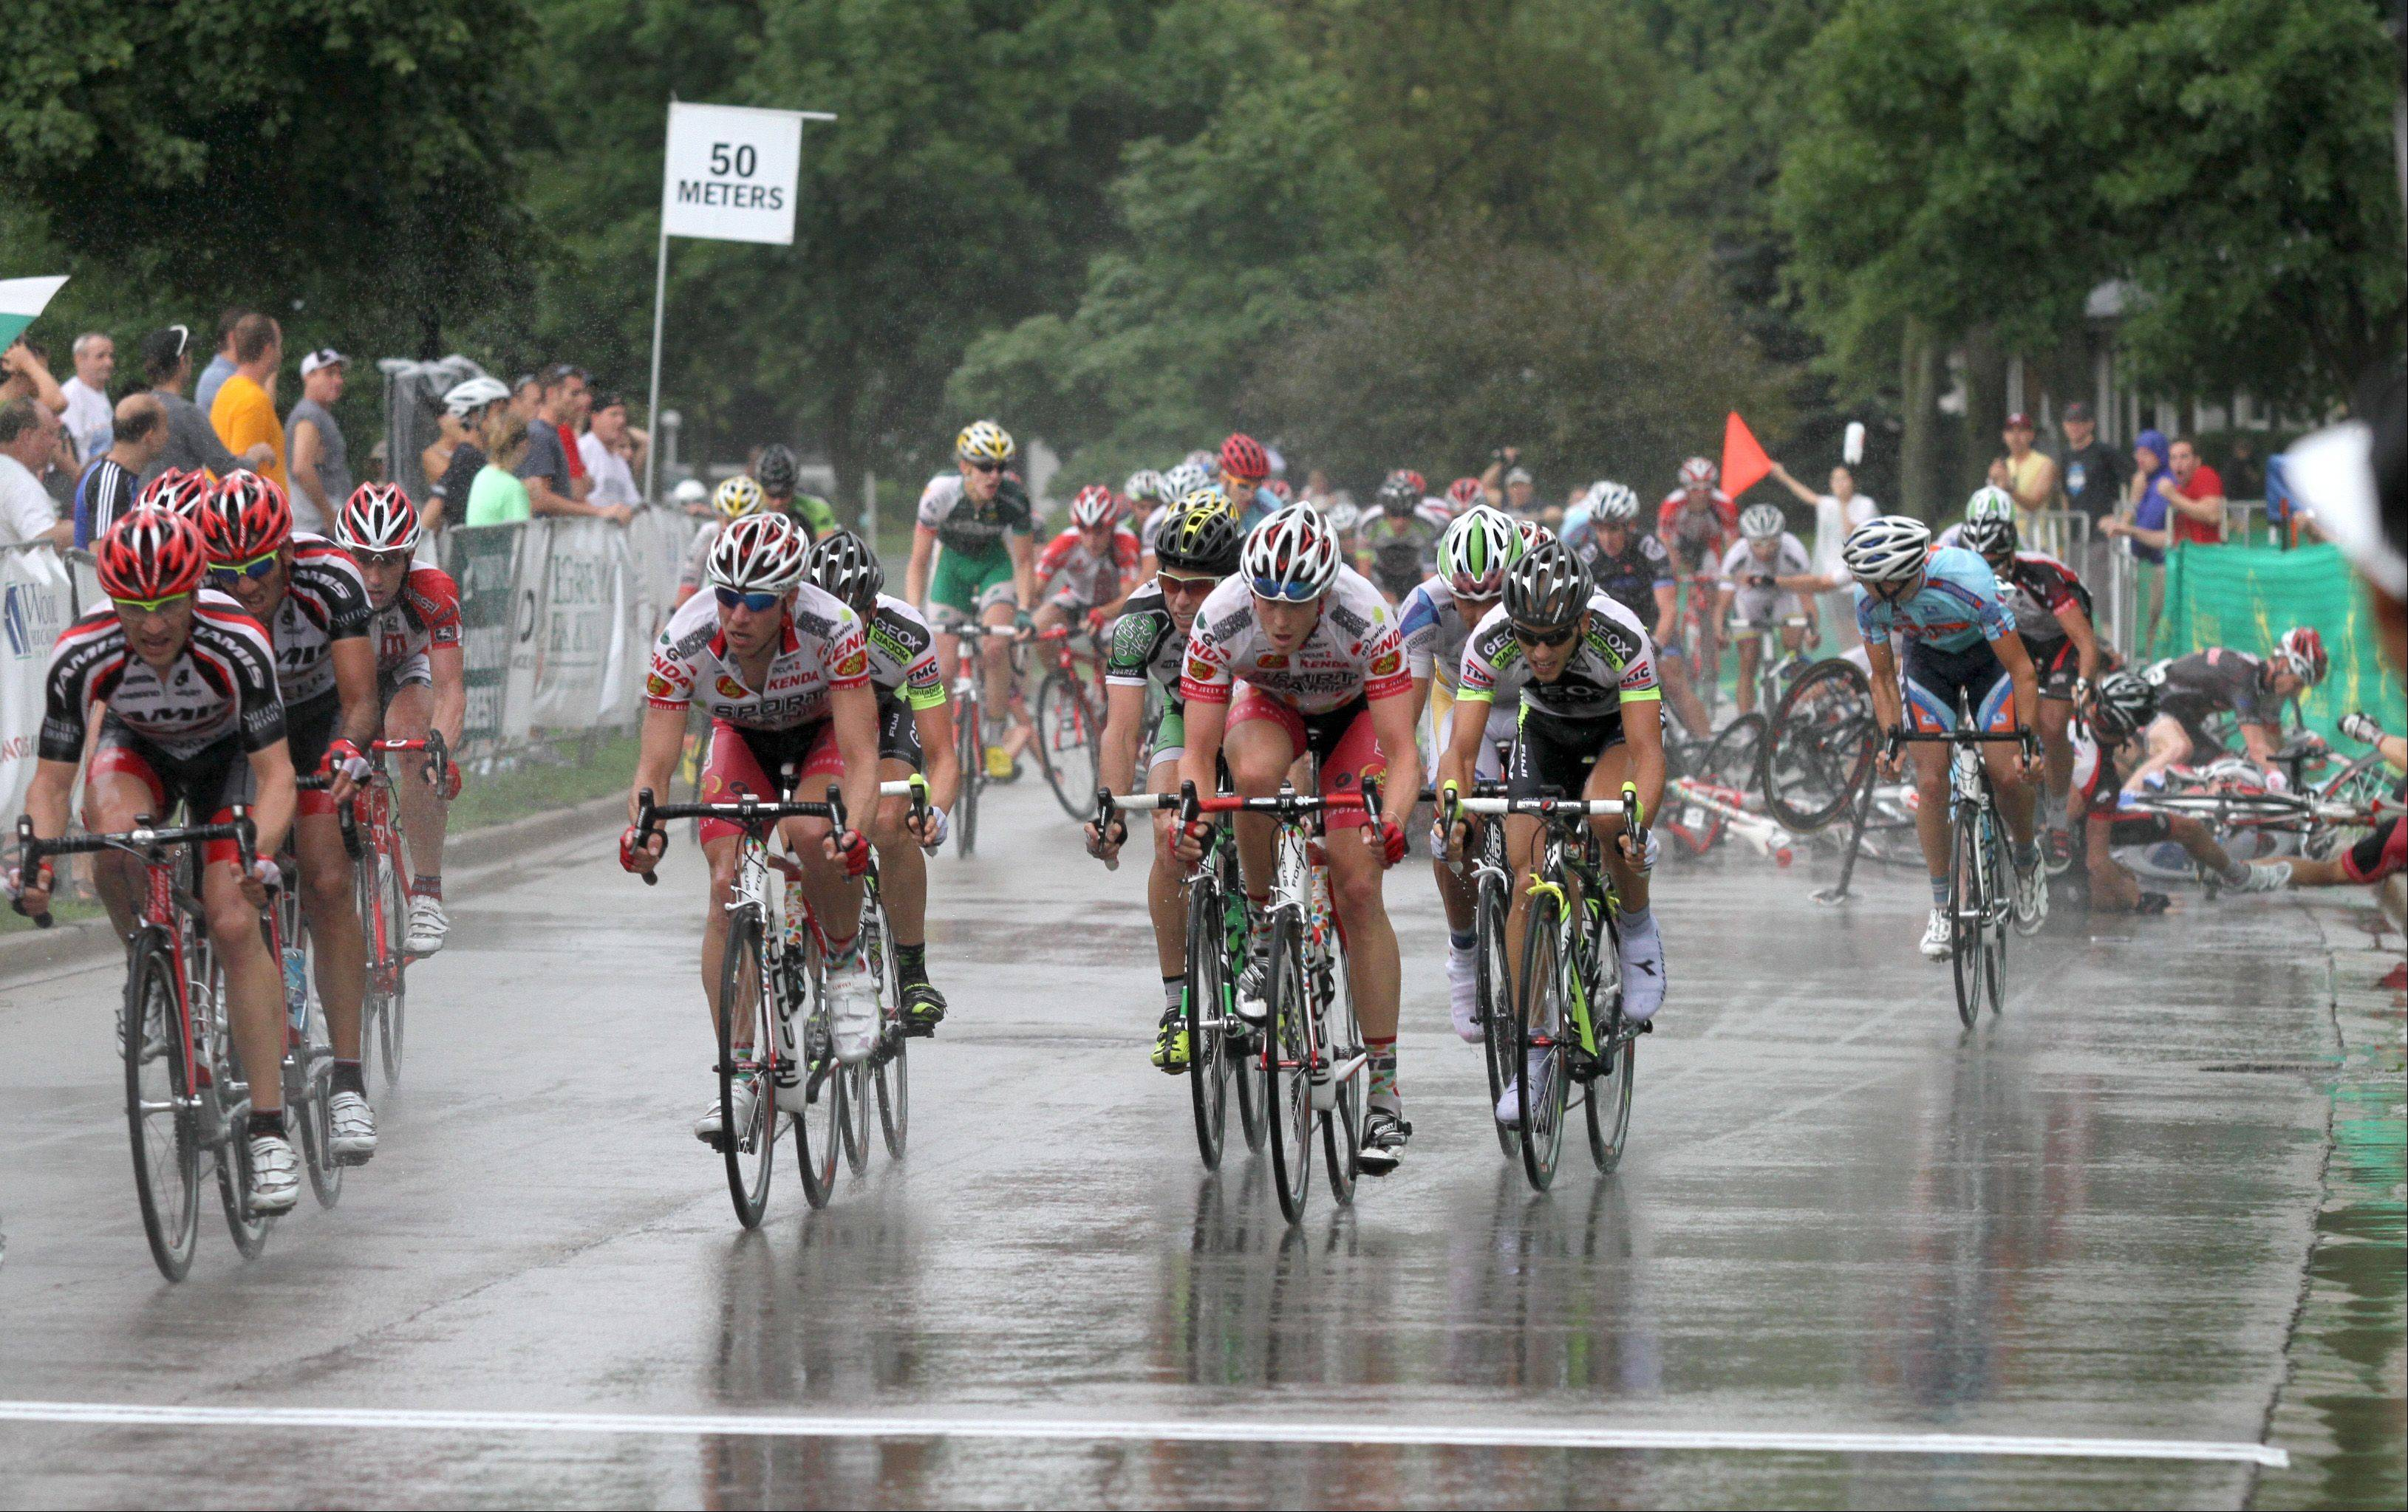 Riders pile up with one lap remaining in the third stage of the Tour of Elk Grove's men's professional race Sunday afternoon.